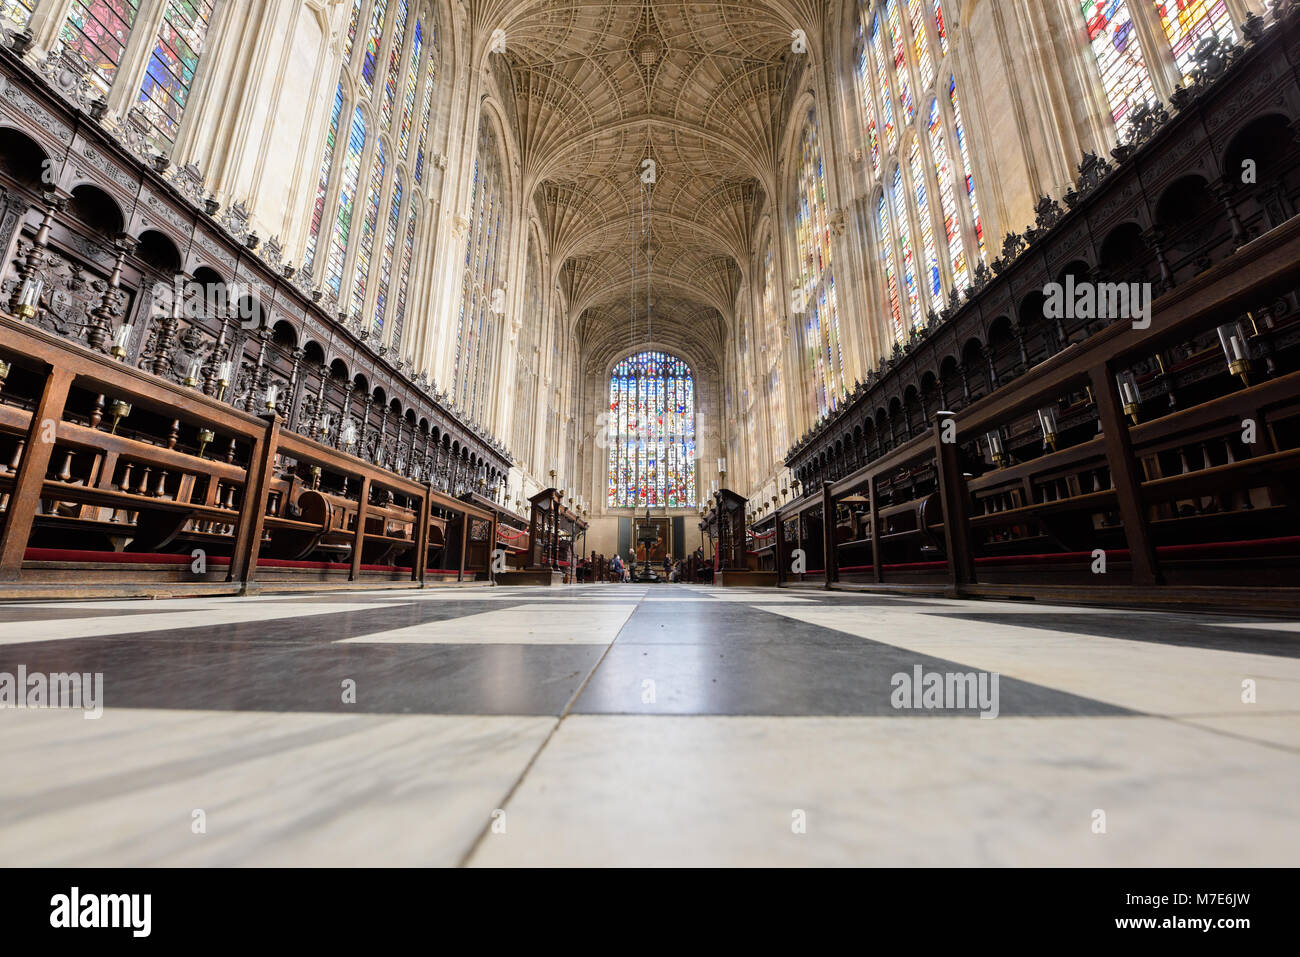 The choir with its floor, stained glass windows, and fan ceiling in the chapel at King's college, university - Stock Image